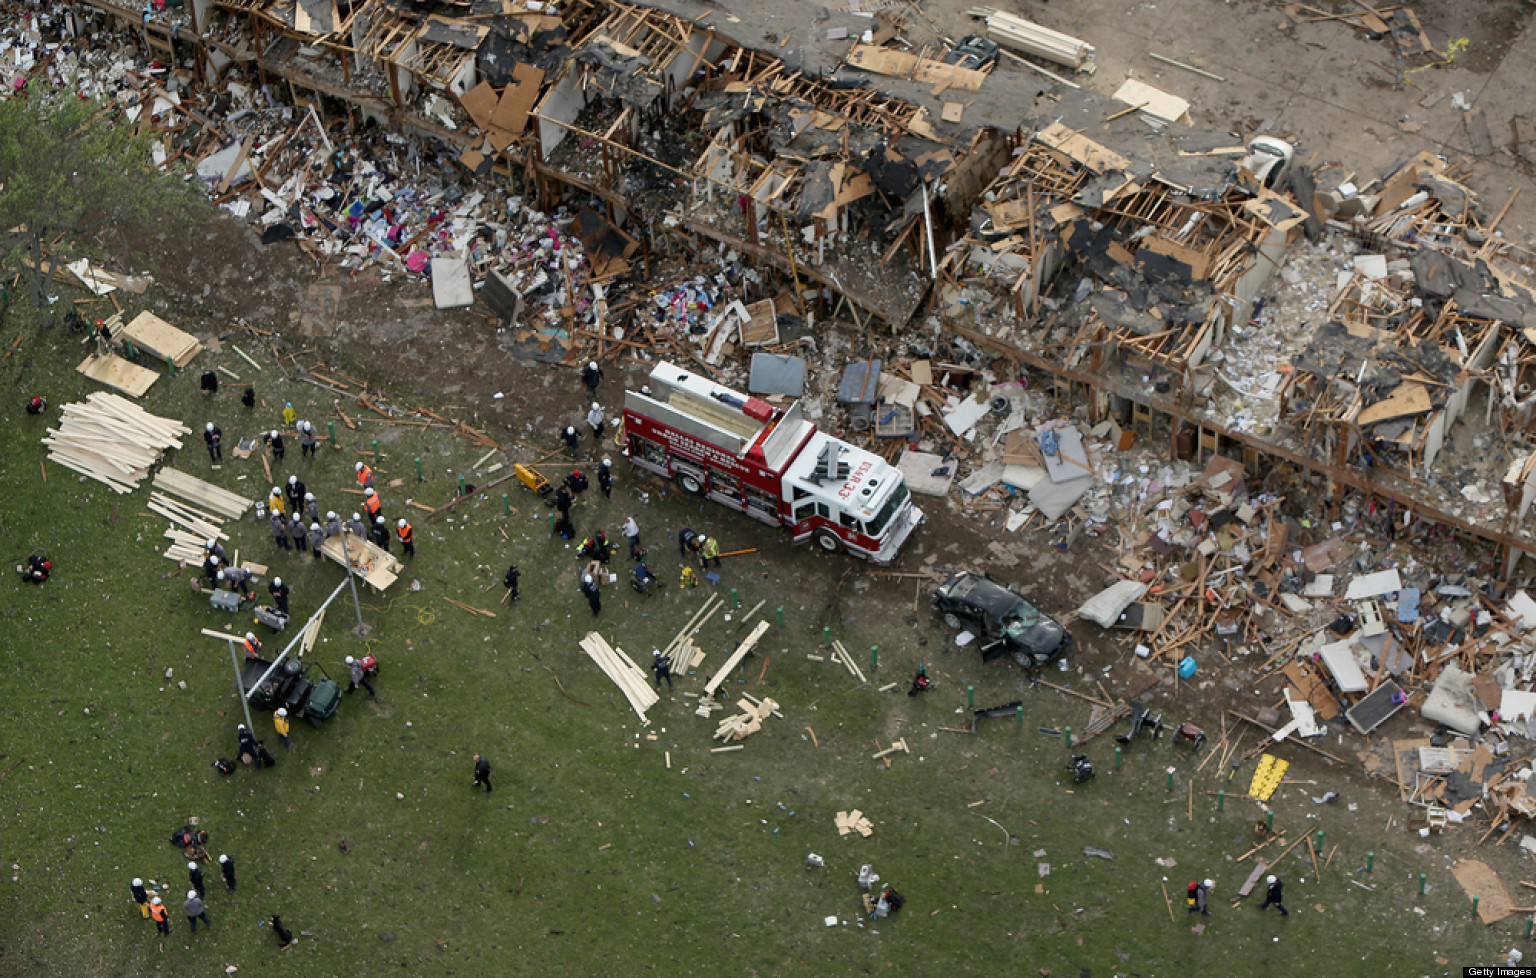 the west fertilizer plant explosion Authorities still haven't determined what caused the explosion at a fertilizer plant in west, texas on wednesday night, although the chemical safety board (csb) has already begun an.